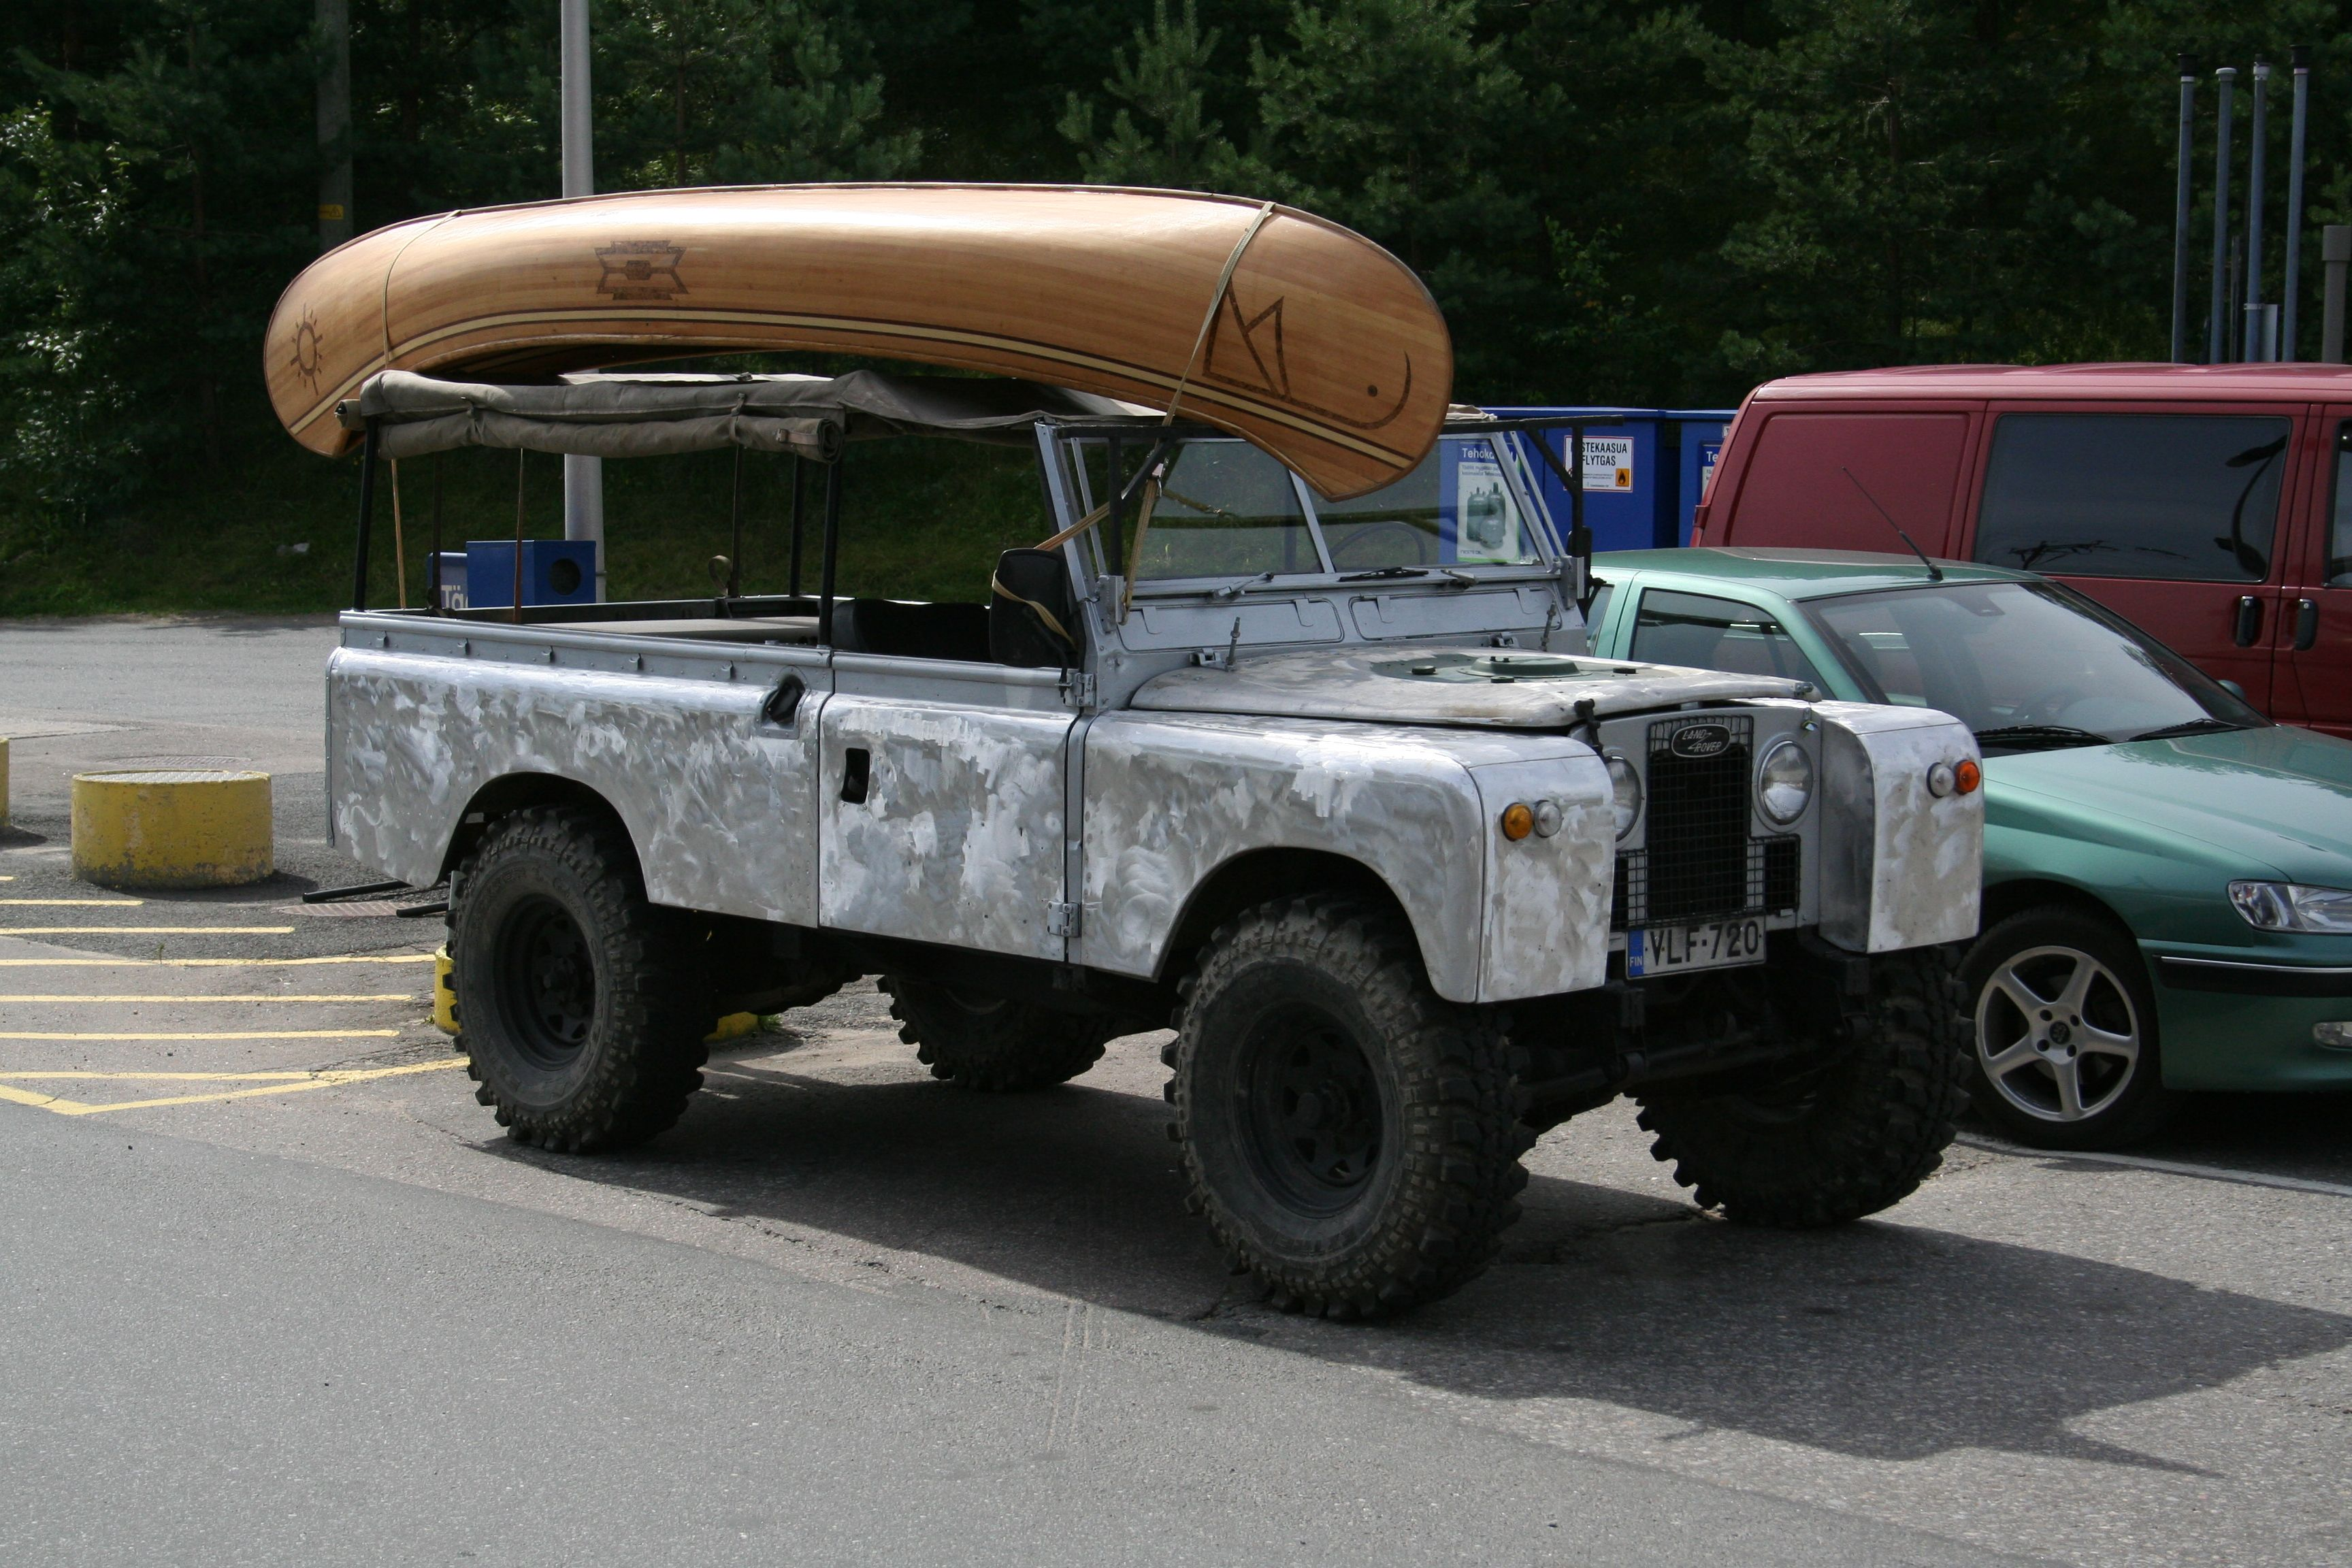 service use online and as below landrover min rover vin example parts book land reference a maintenance the ownership